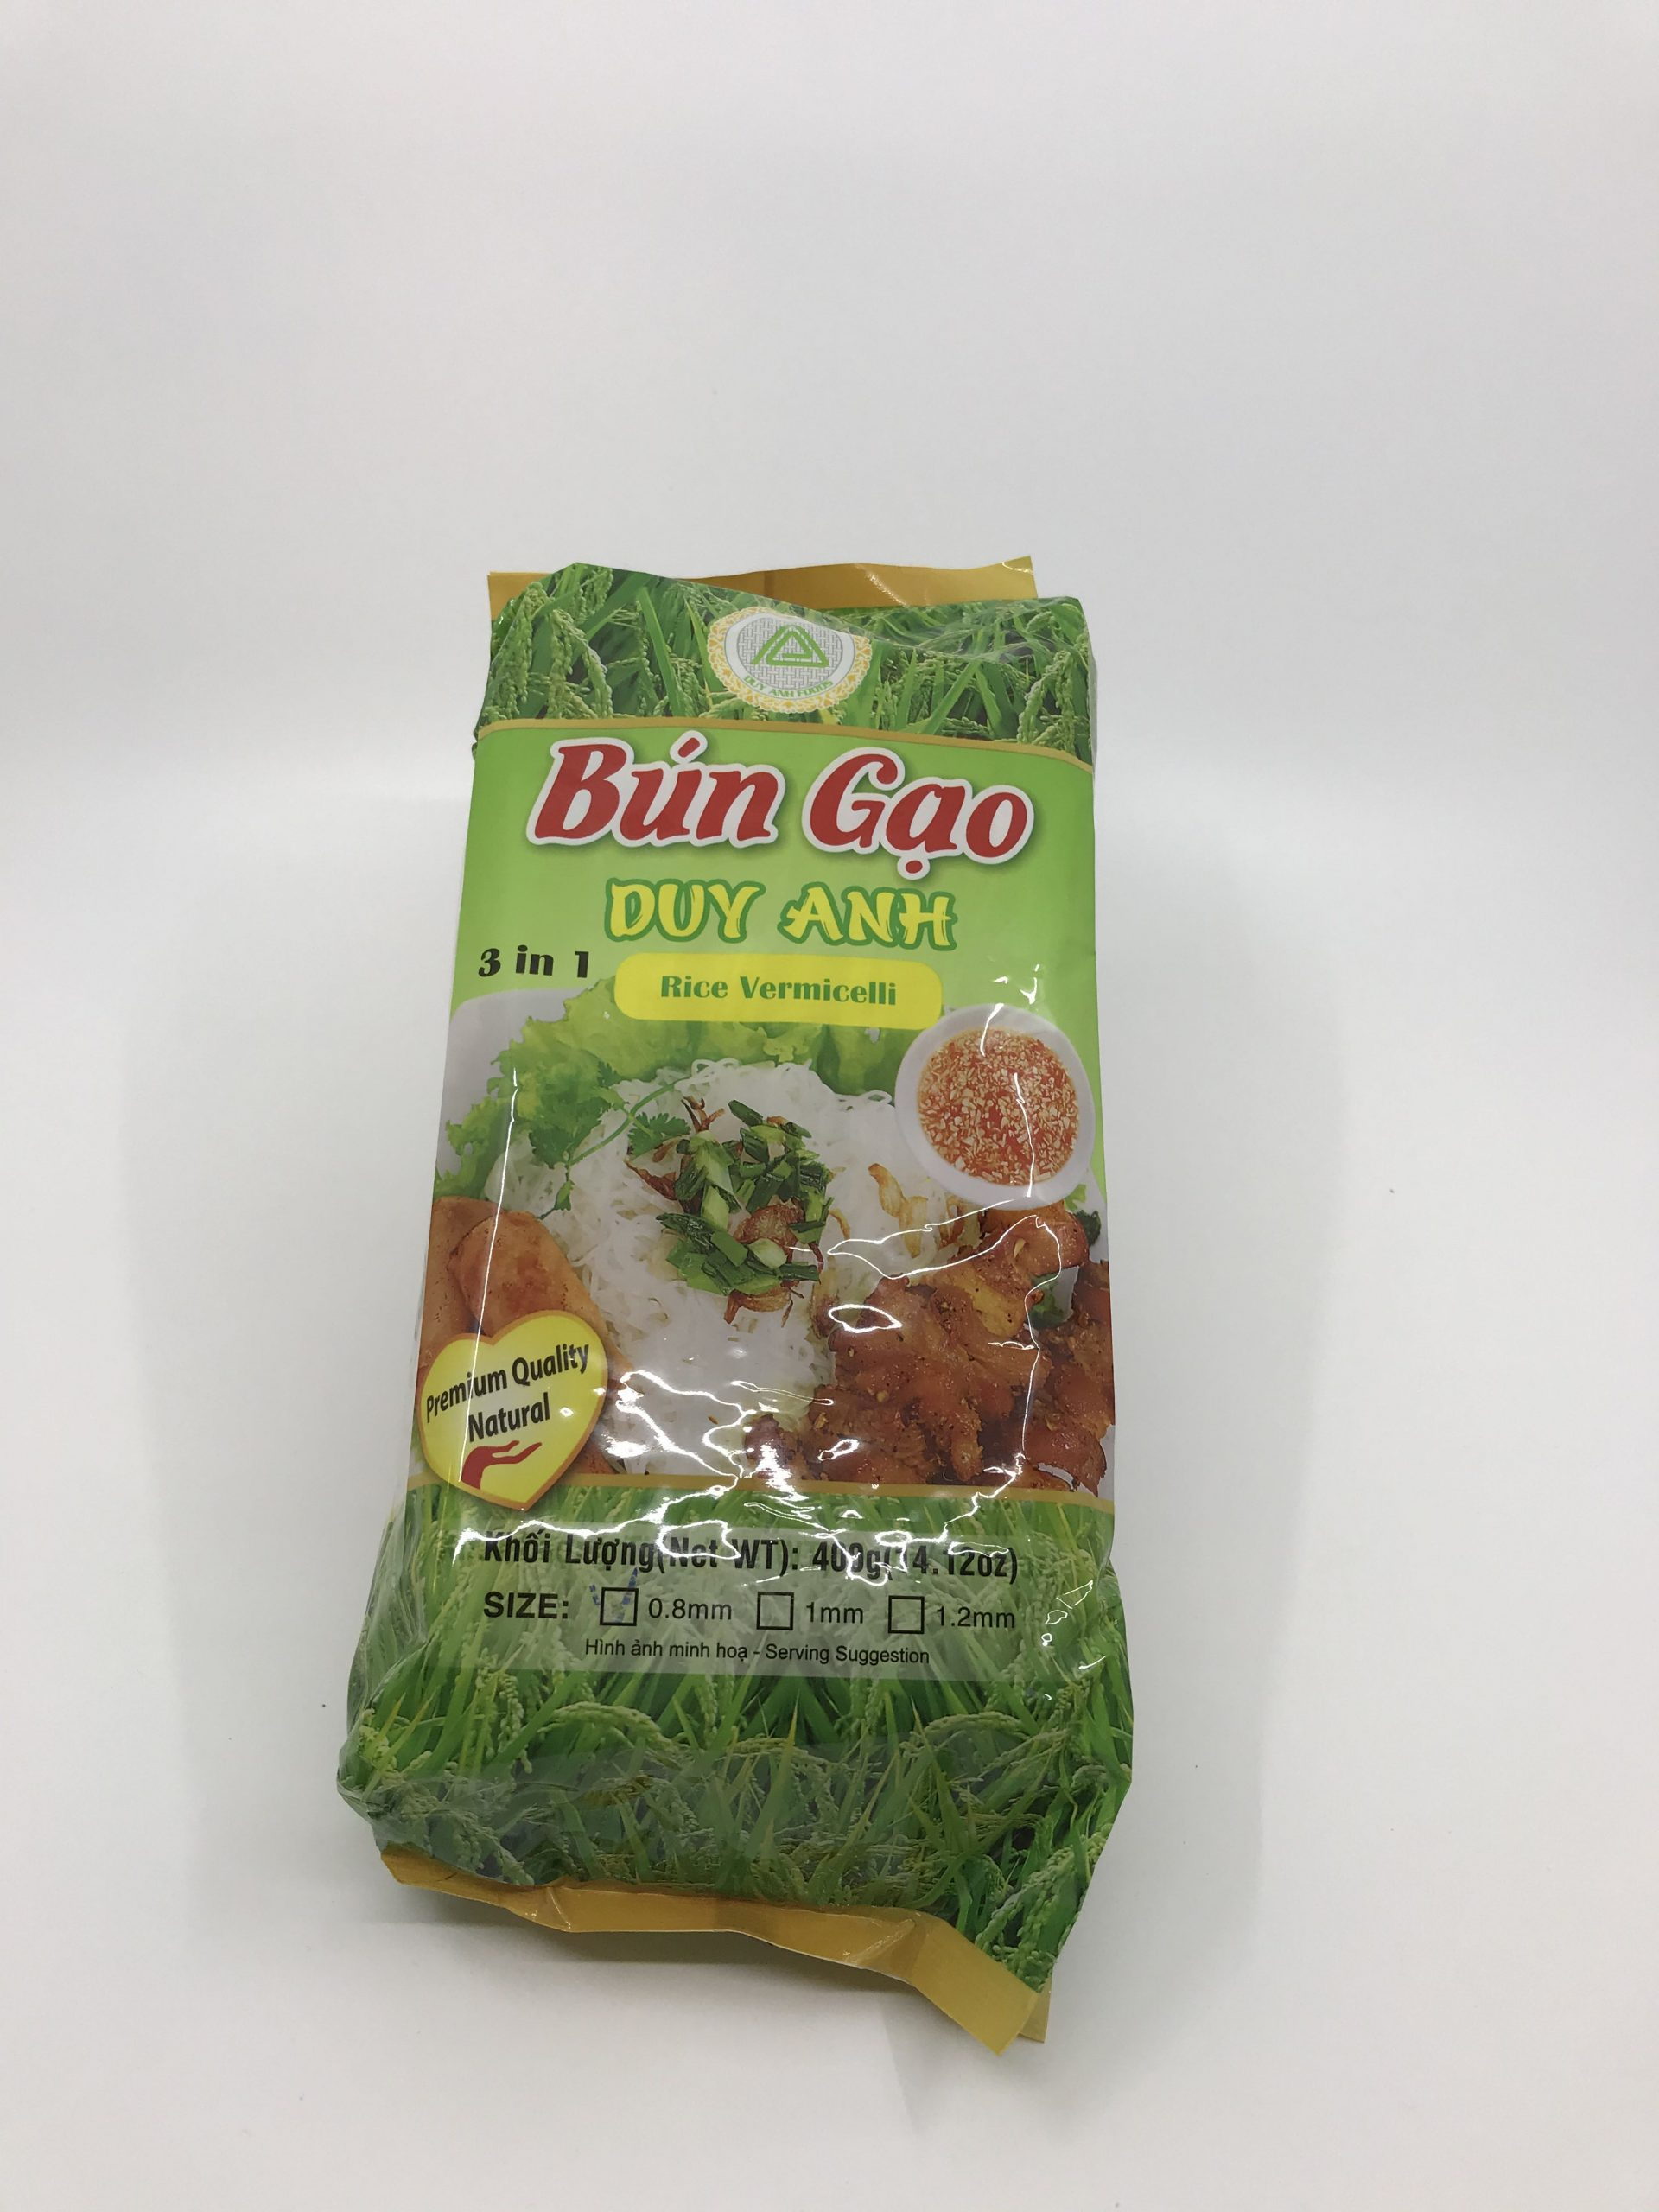 Rice noodle (bun gao) Duy Anh brand